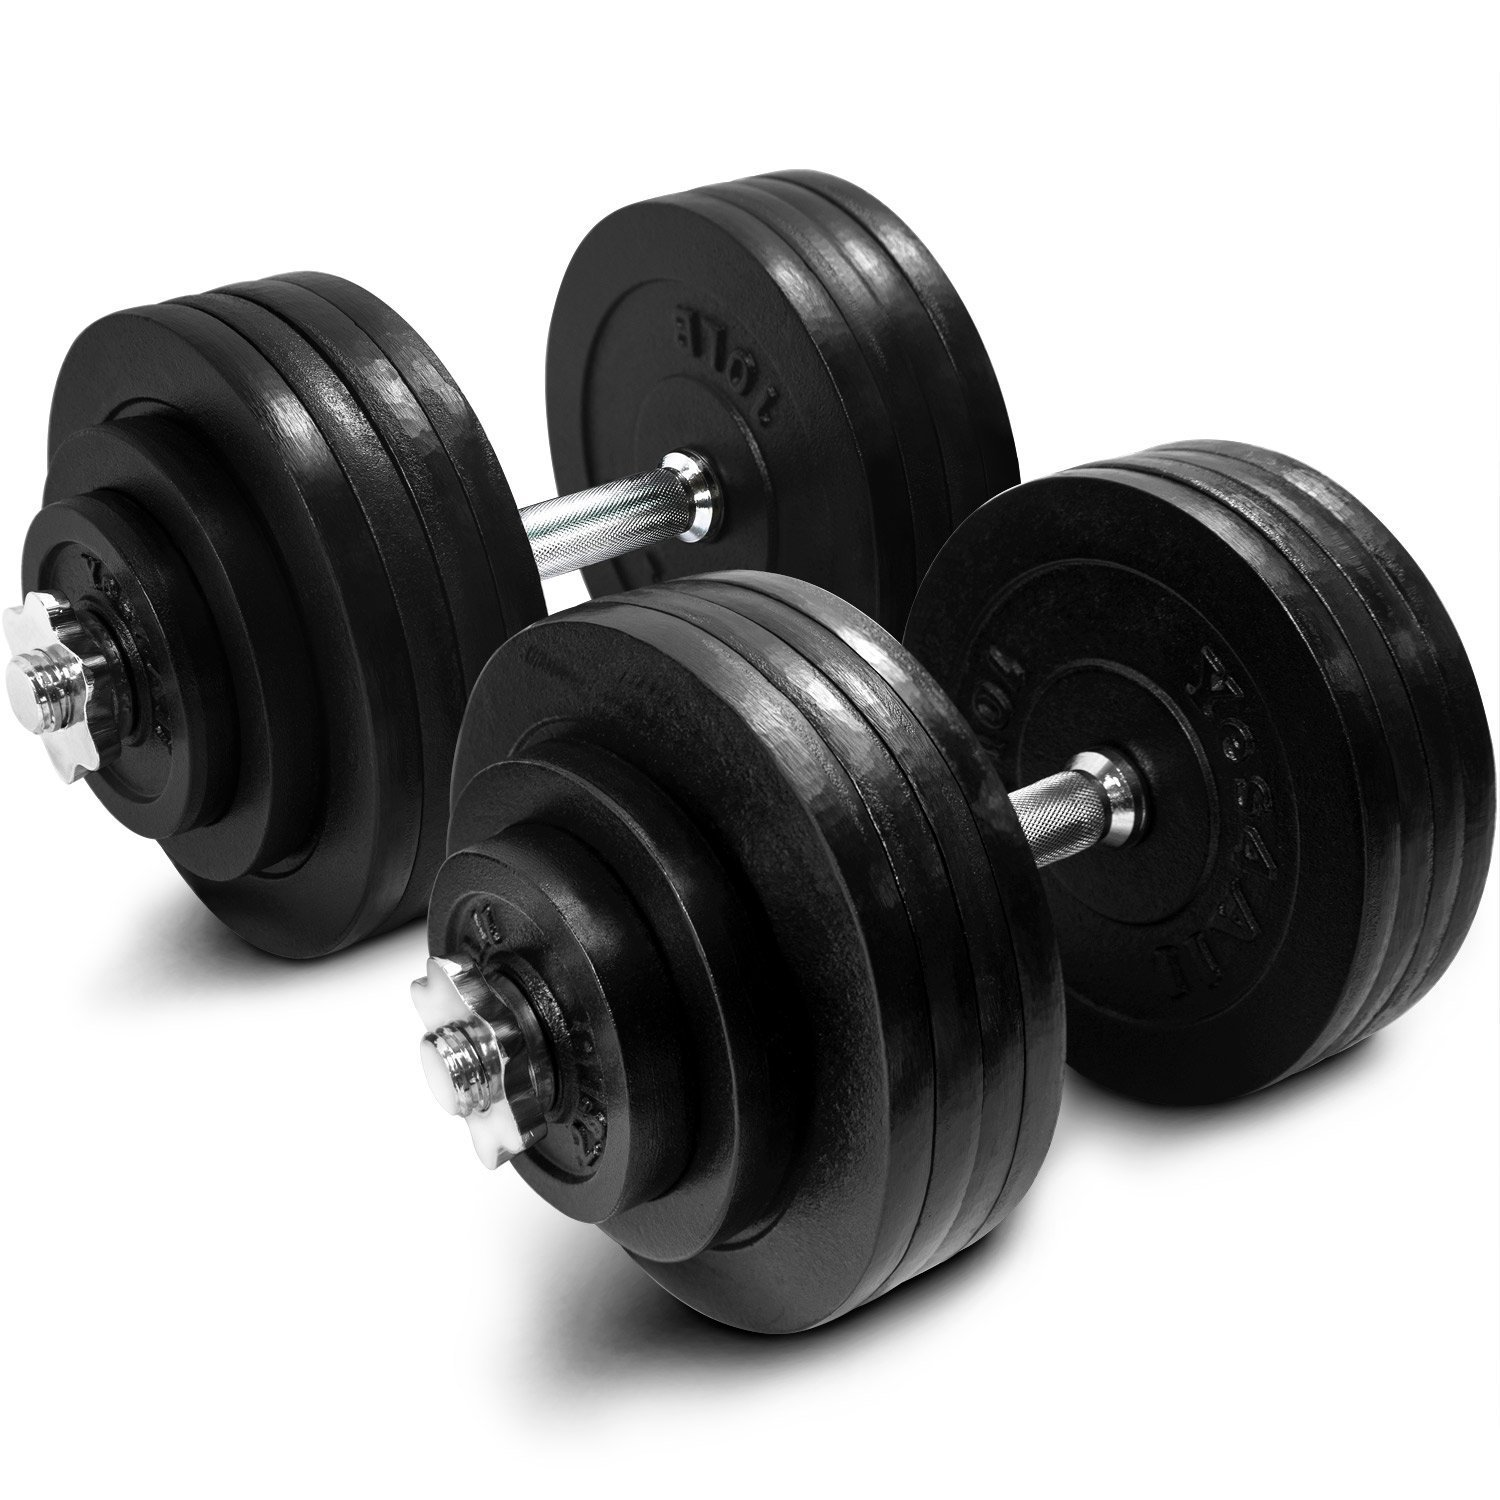 set of adjustable dumbbells